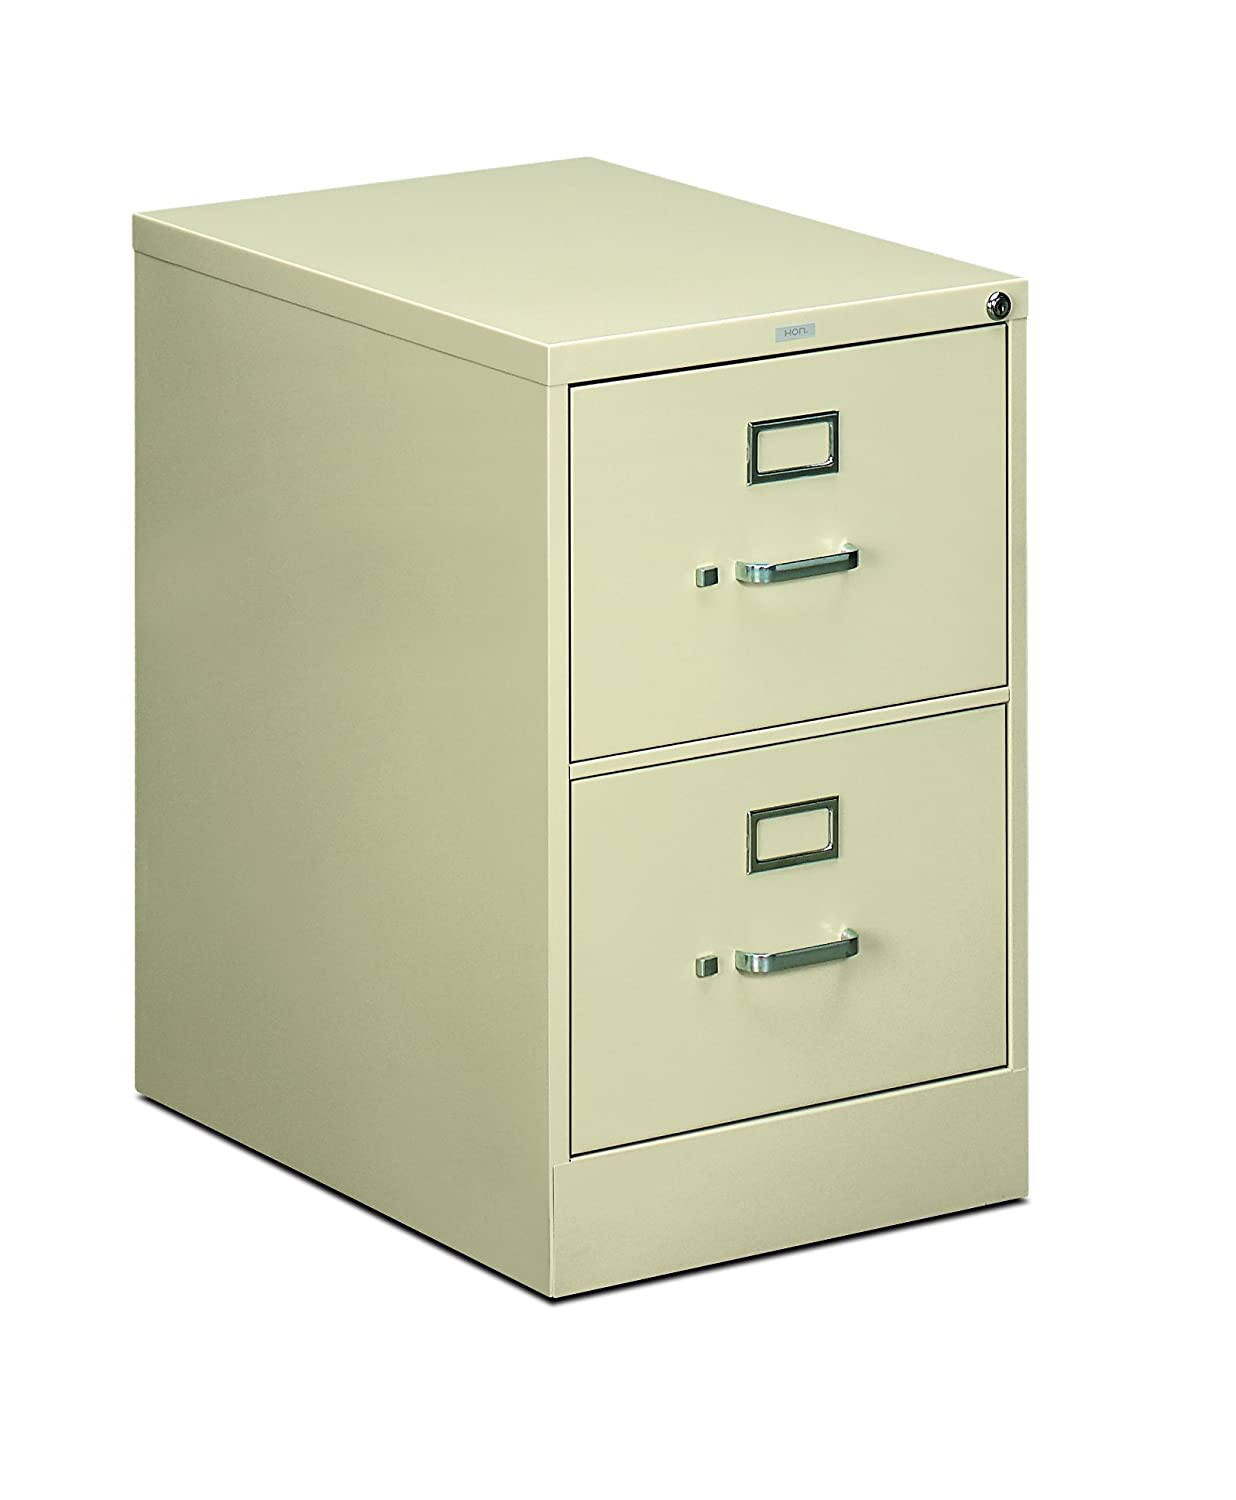 "HON 2-Drawer Filing Cabinet - 510 Series Full-Suspension Legal File Cabinet, 29h by 25d by 18.25w, Black (H512C)"" Black (H512C)"" United Stationers H512C.P.P"